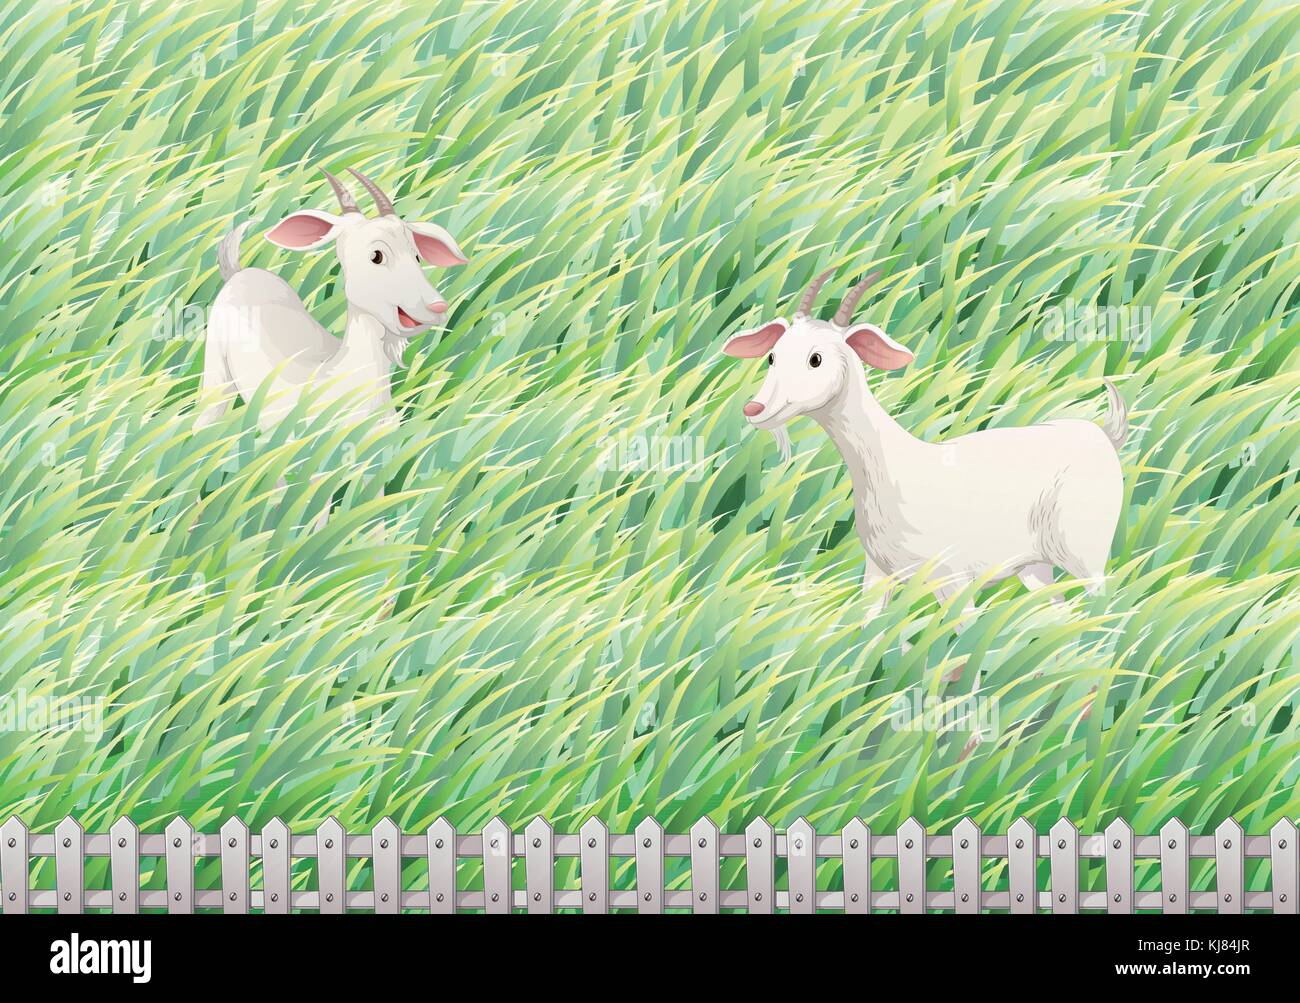 Illustration of the two goats in the farm - Stock Vector